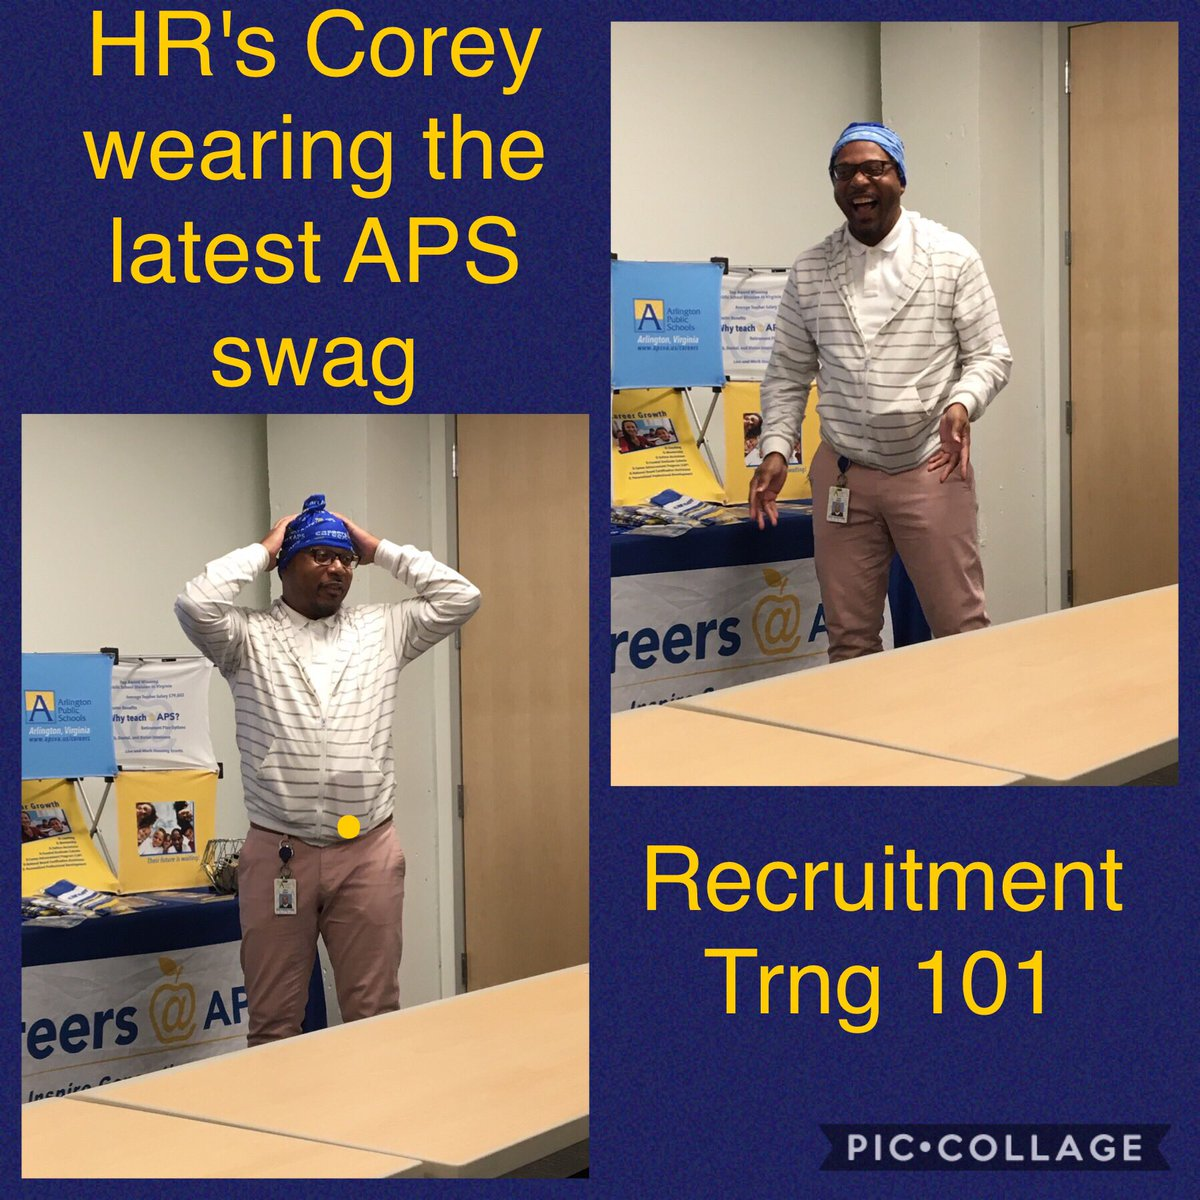 Training to get APS the best!! ⁦<a target='_blank' href='http://twitter.com/HR4APS'>@HR4APS</a>⁩ <a target='_blank' href='https://t.co/0KFyXMoOPX'>https://t.co/0KFyXMoOPX</a>